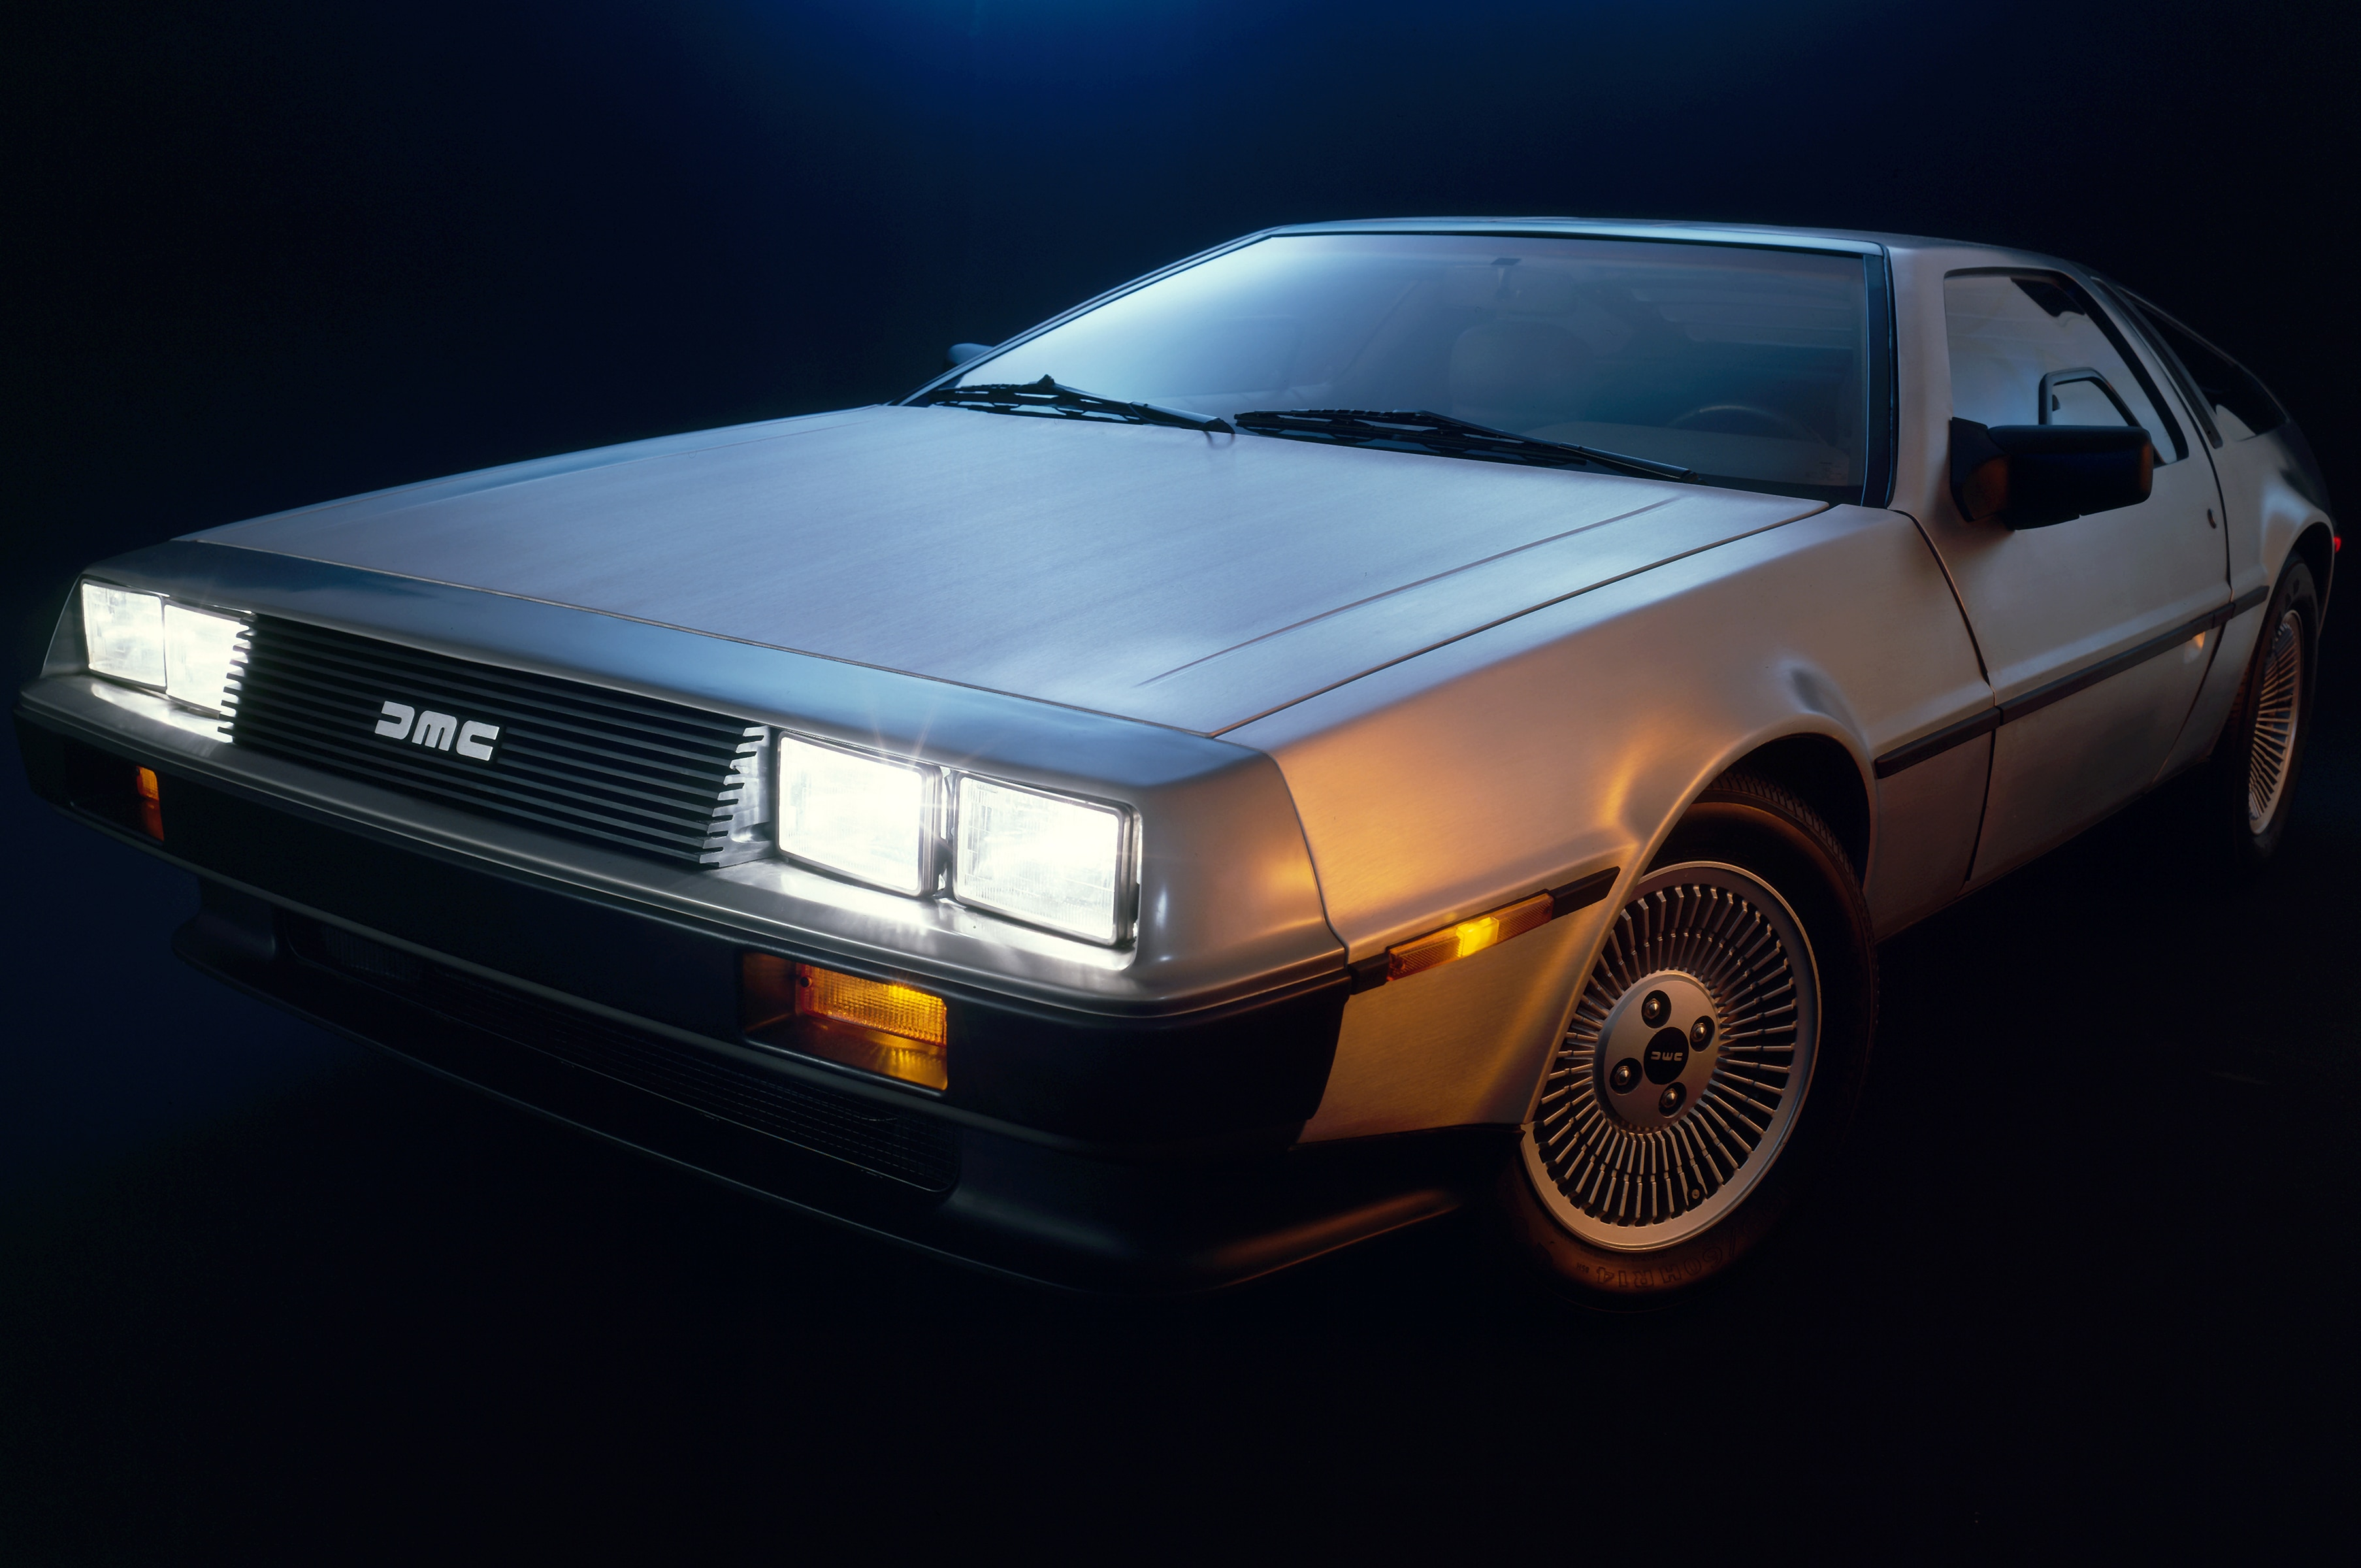 Delorean Dmc 12 071